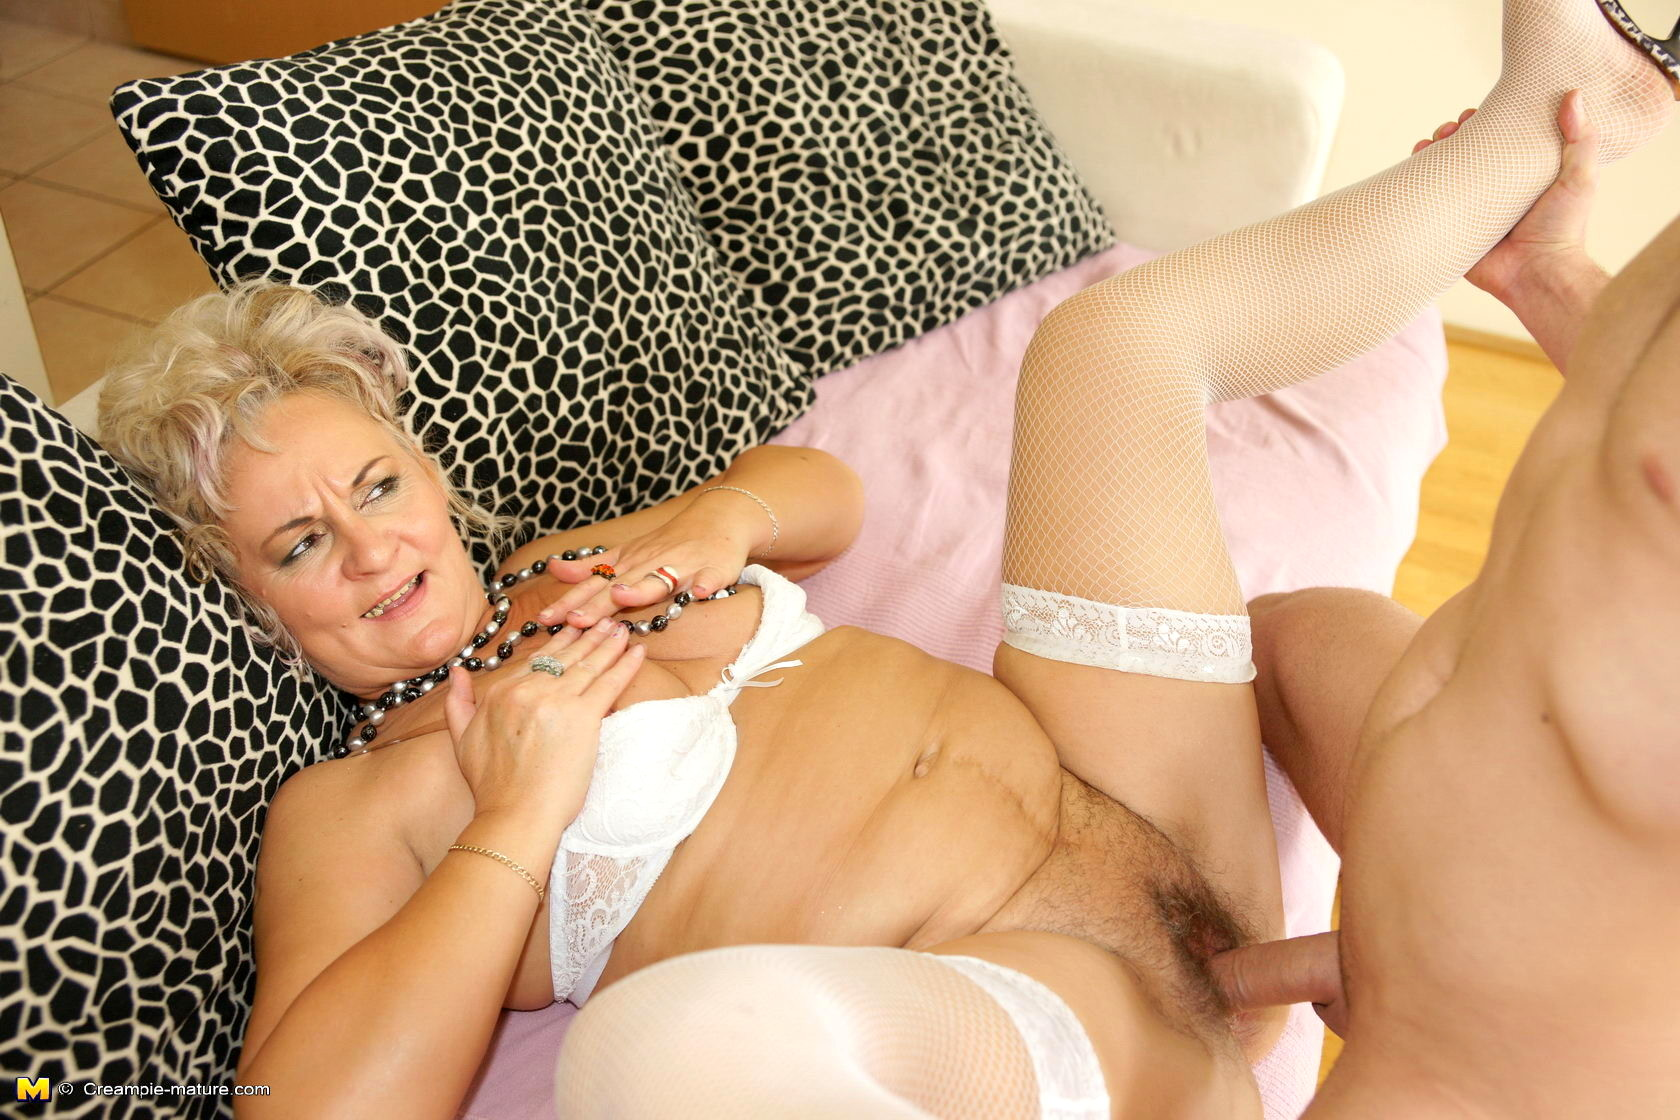 Free mature women audio sex tapes, tight ass bitch nude